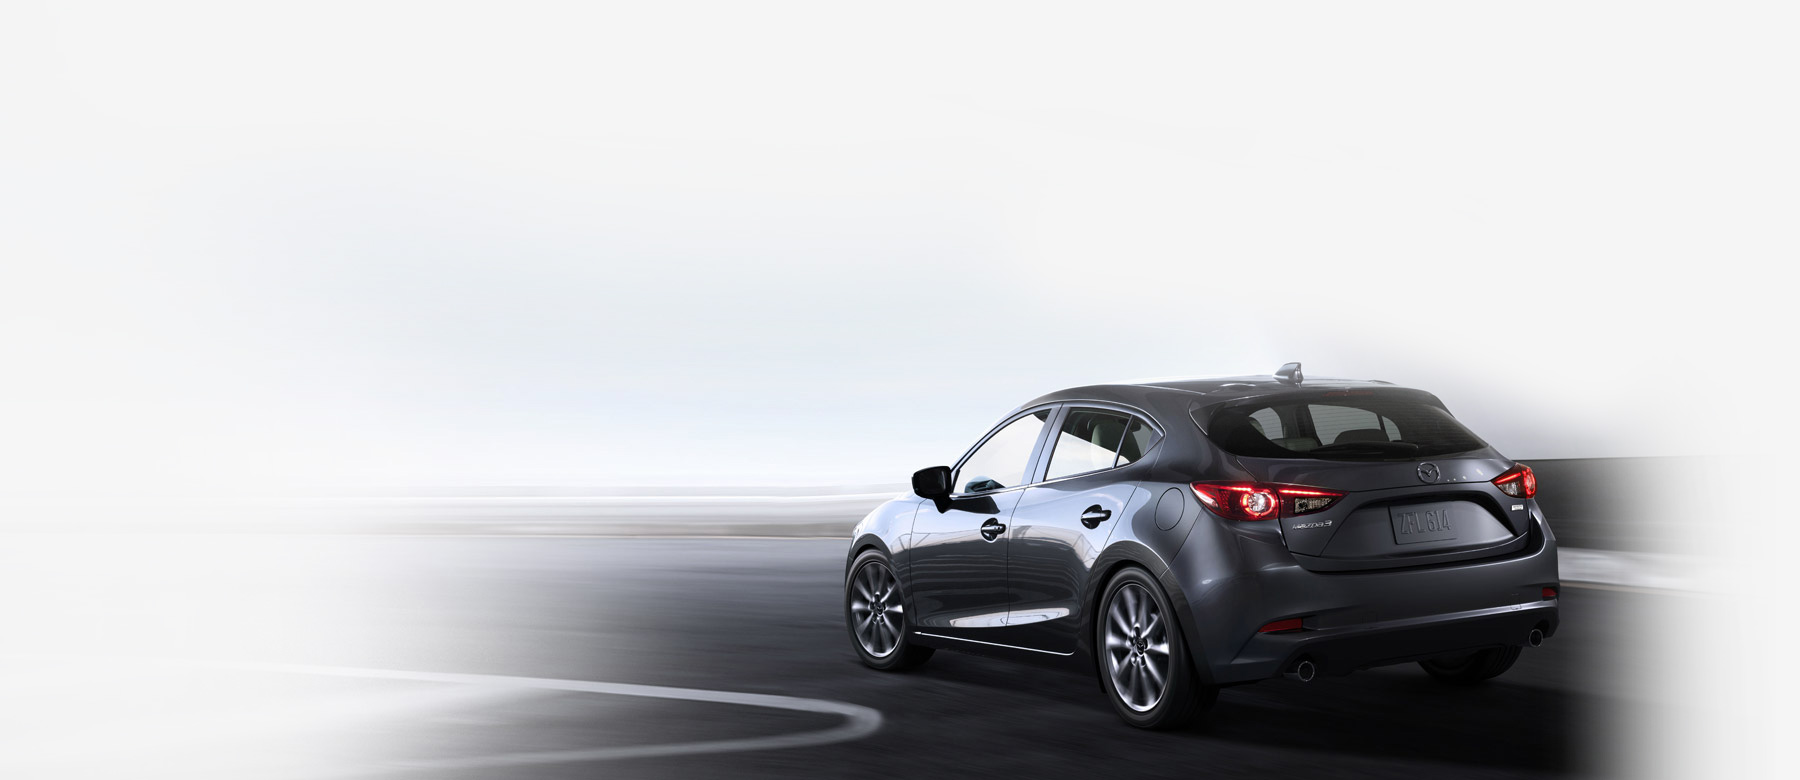 2018 Mazda 3 Hatchback - Fuel Efficient Compact Car ...